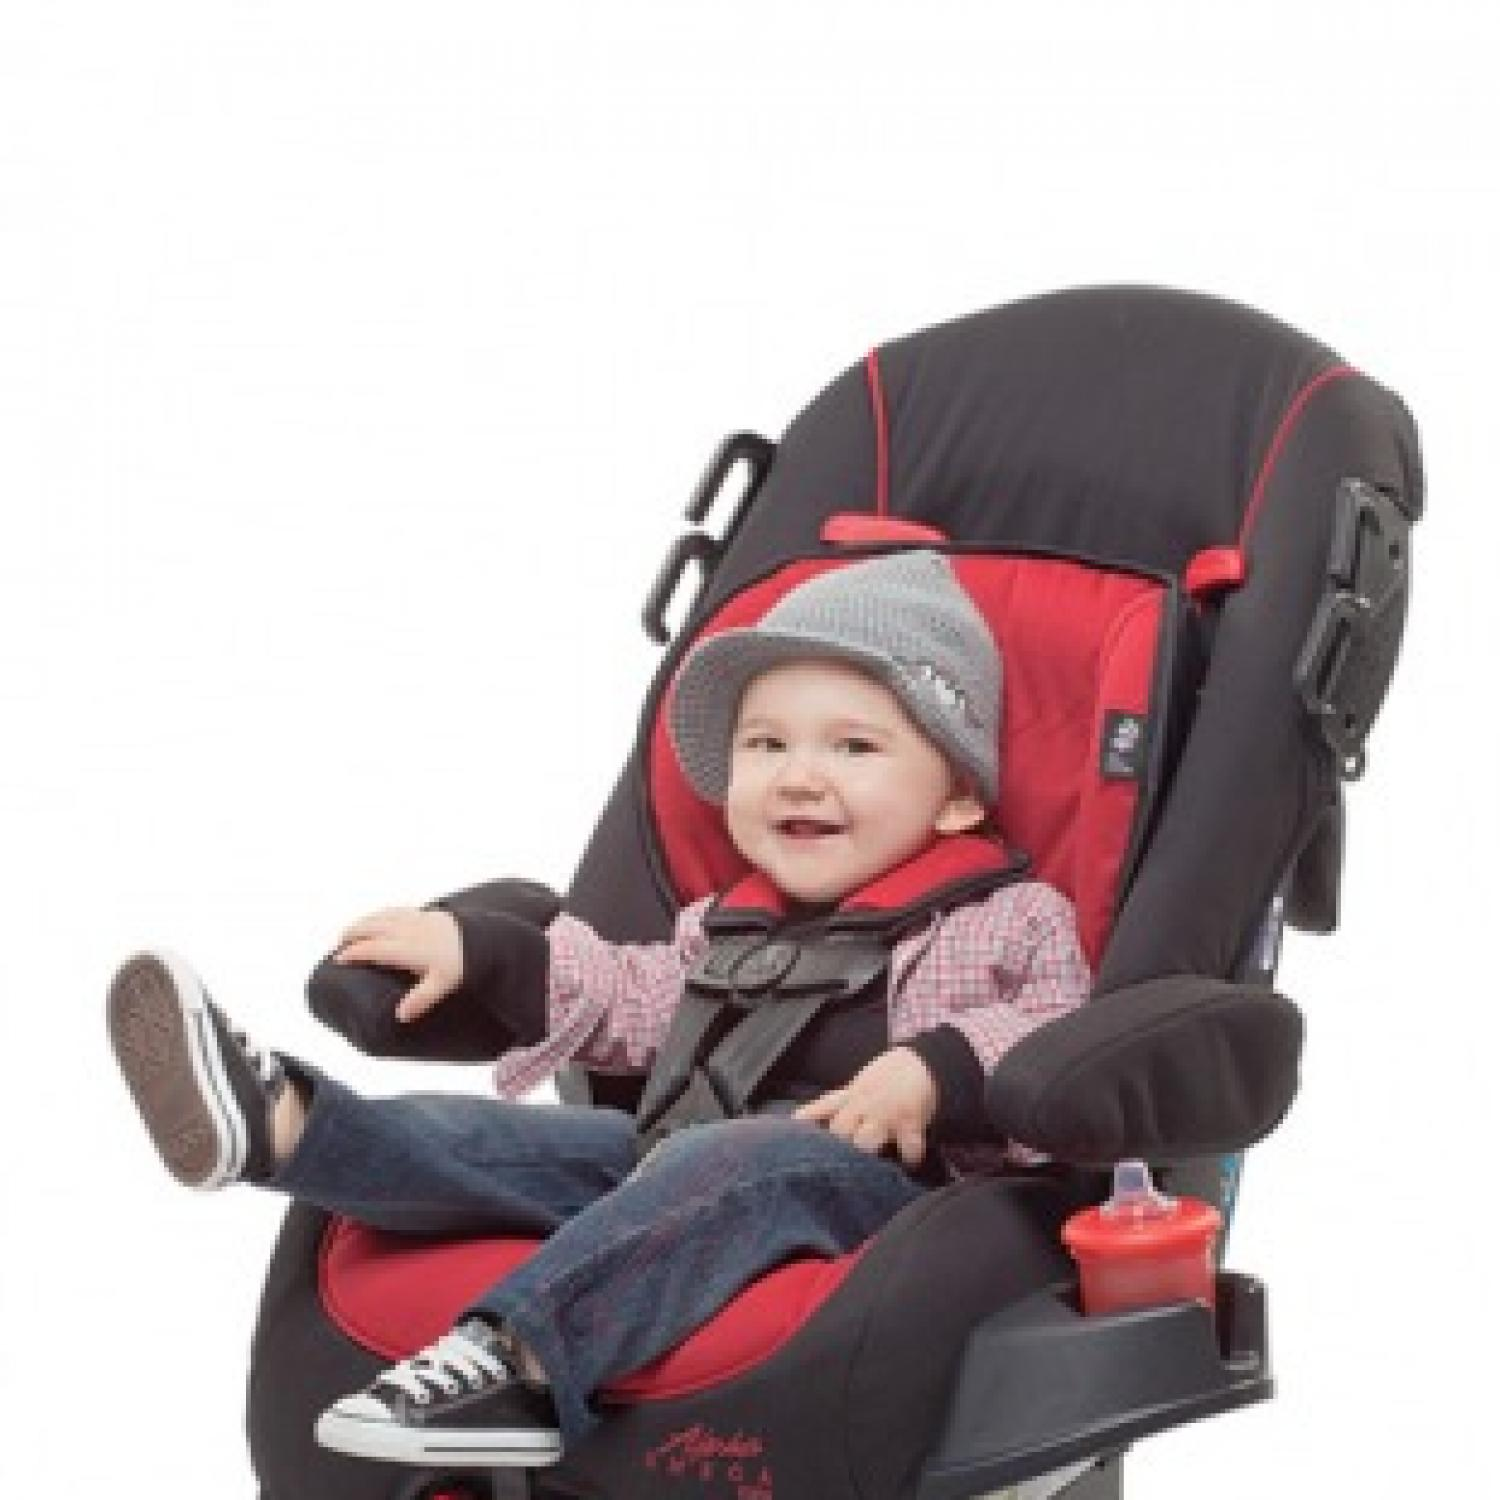 New Infant and Convertible Car Seats Parenting